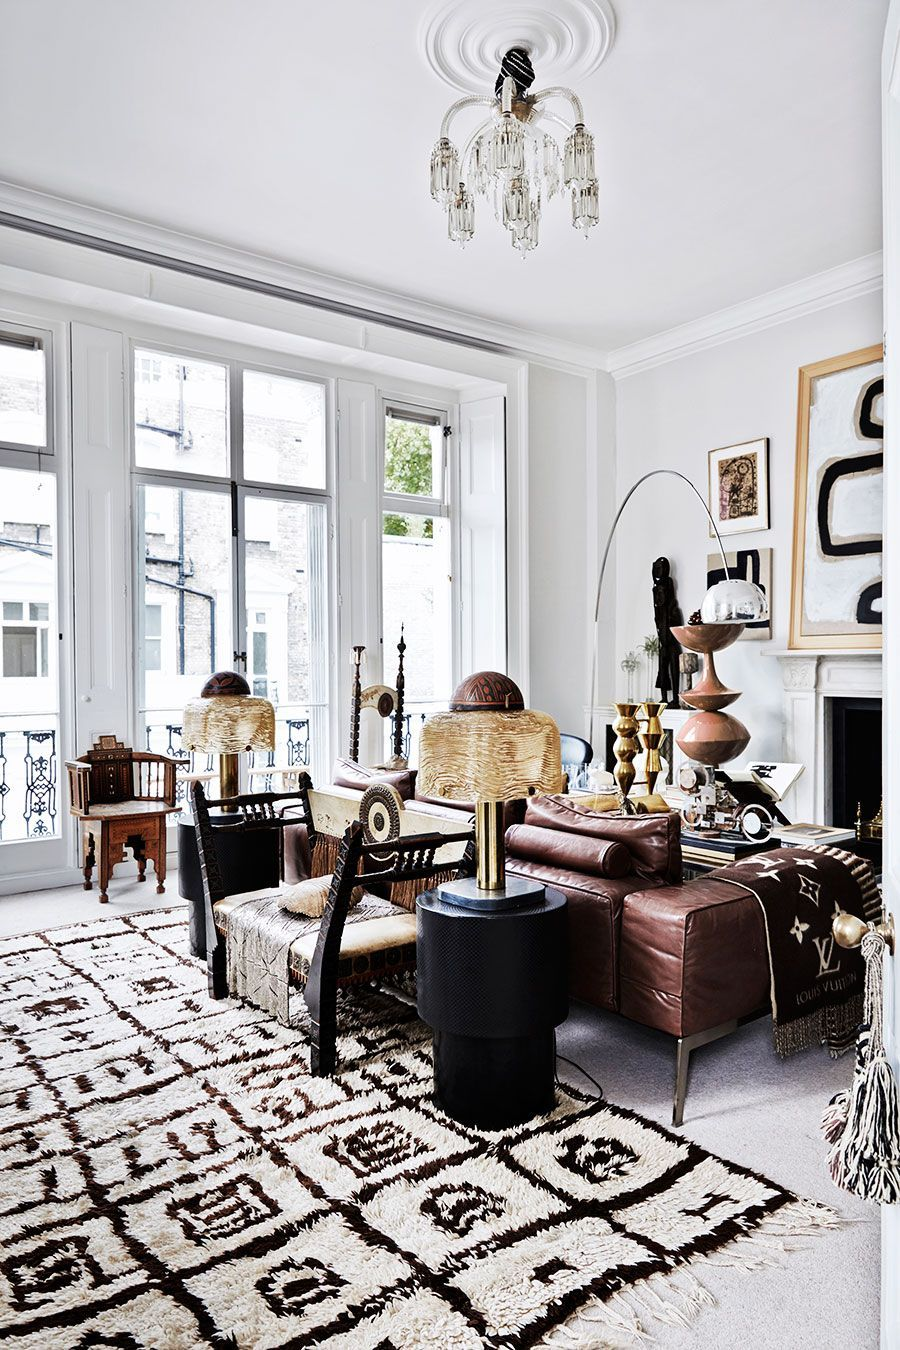 21+ Top Small Living Room Decorating Ideas On A Budget   Small ...